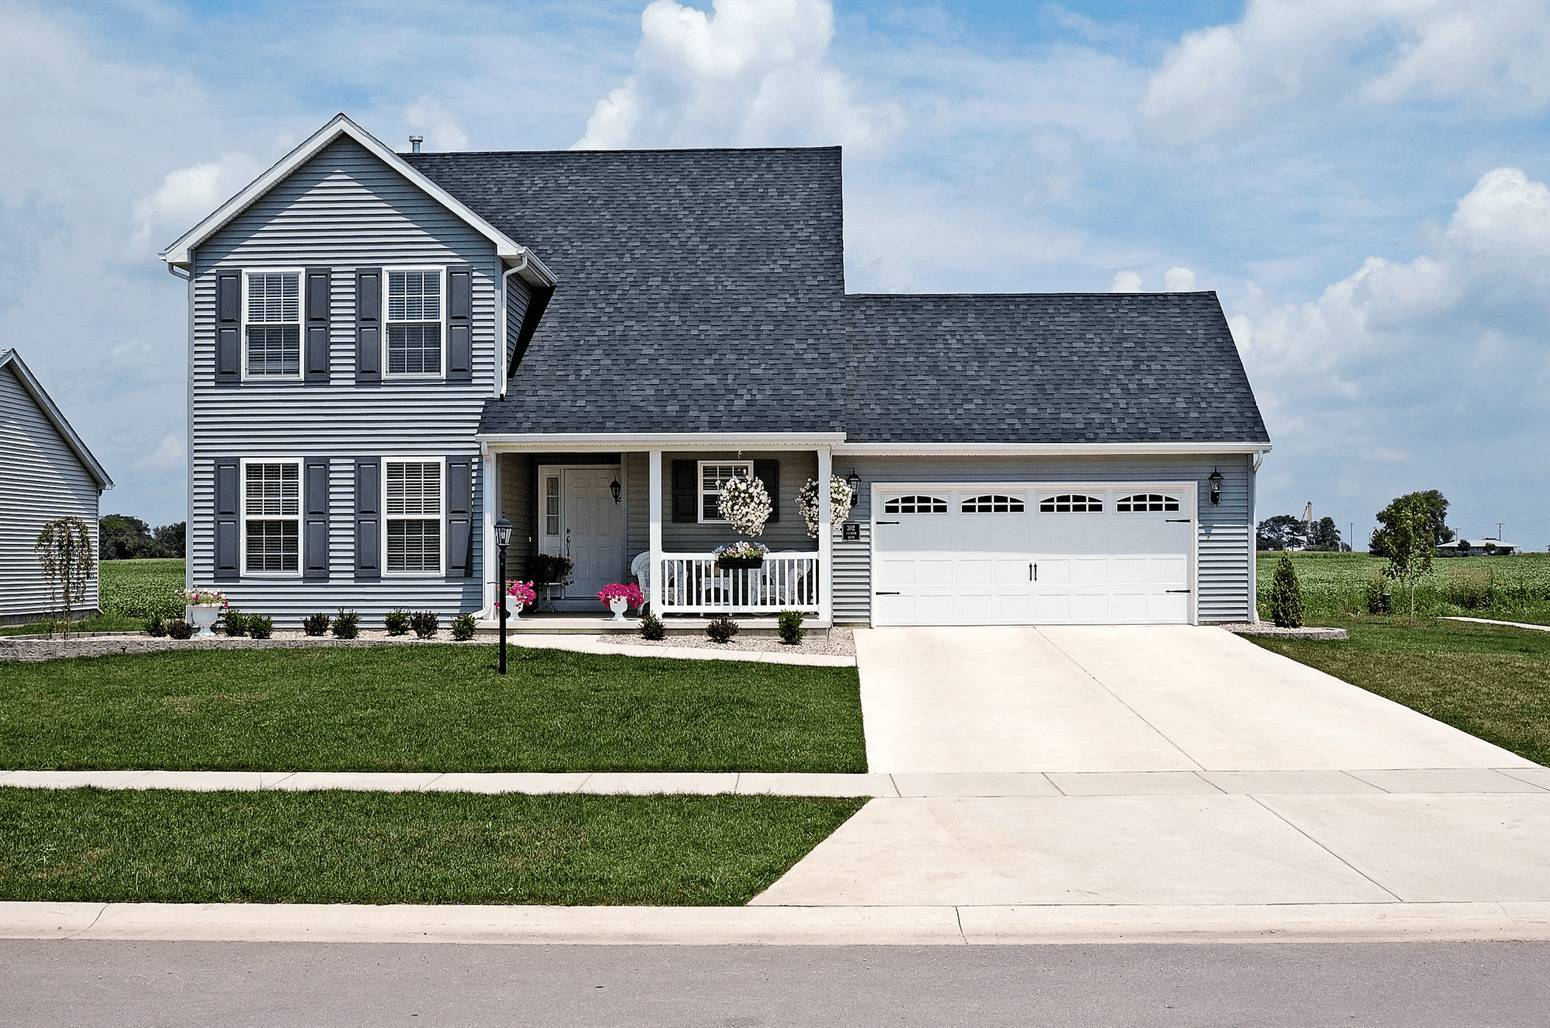 Stamped Carriage House Garage Door - Residential Garage Doors - Garage Door Services, Inc. Omaha